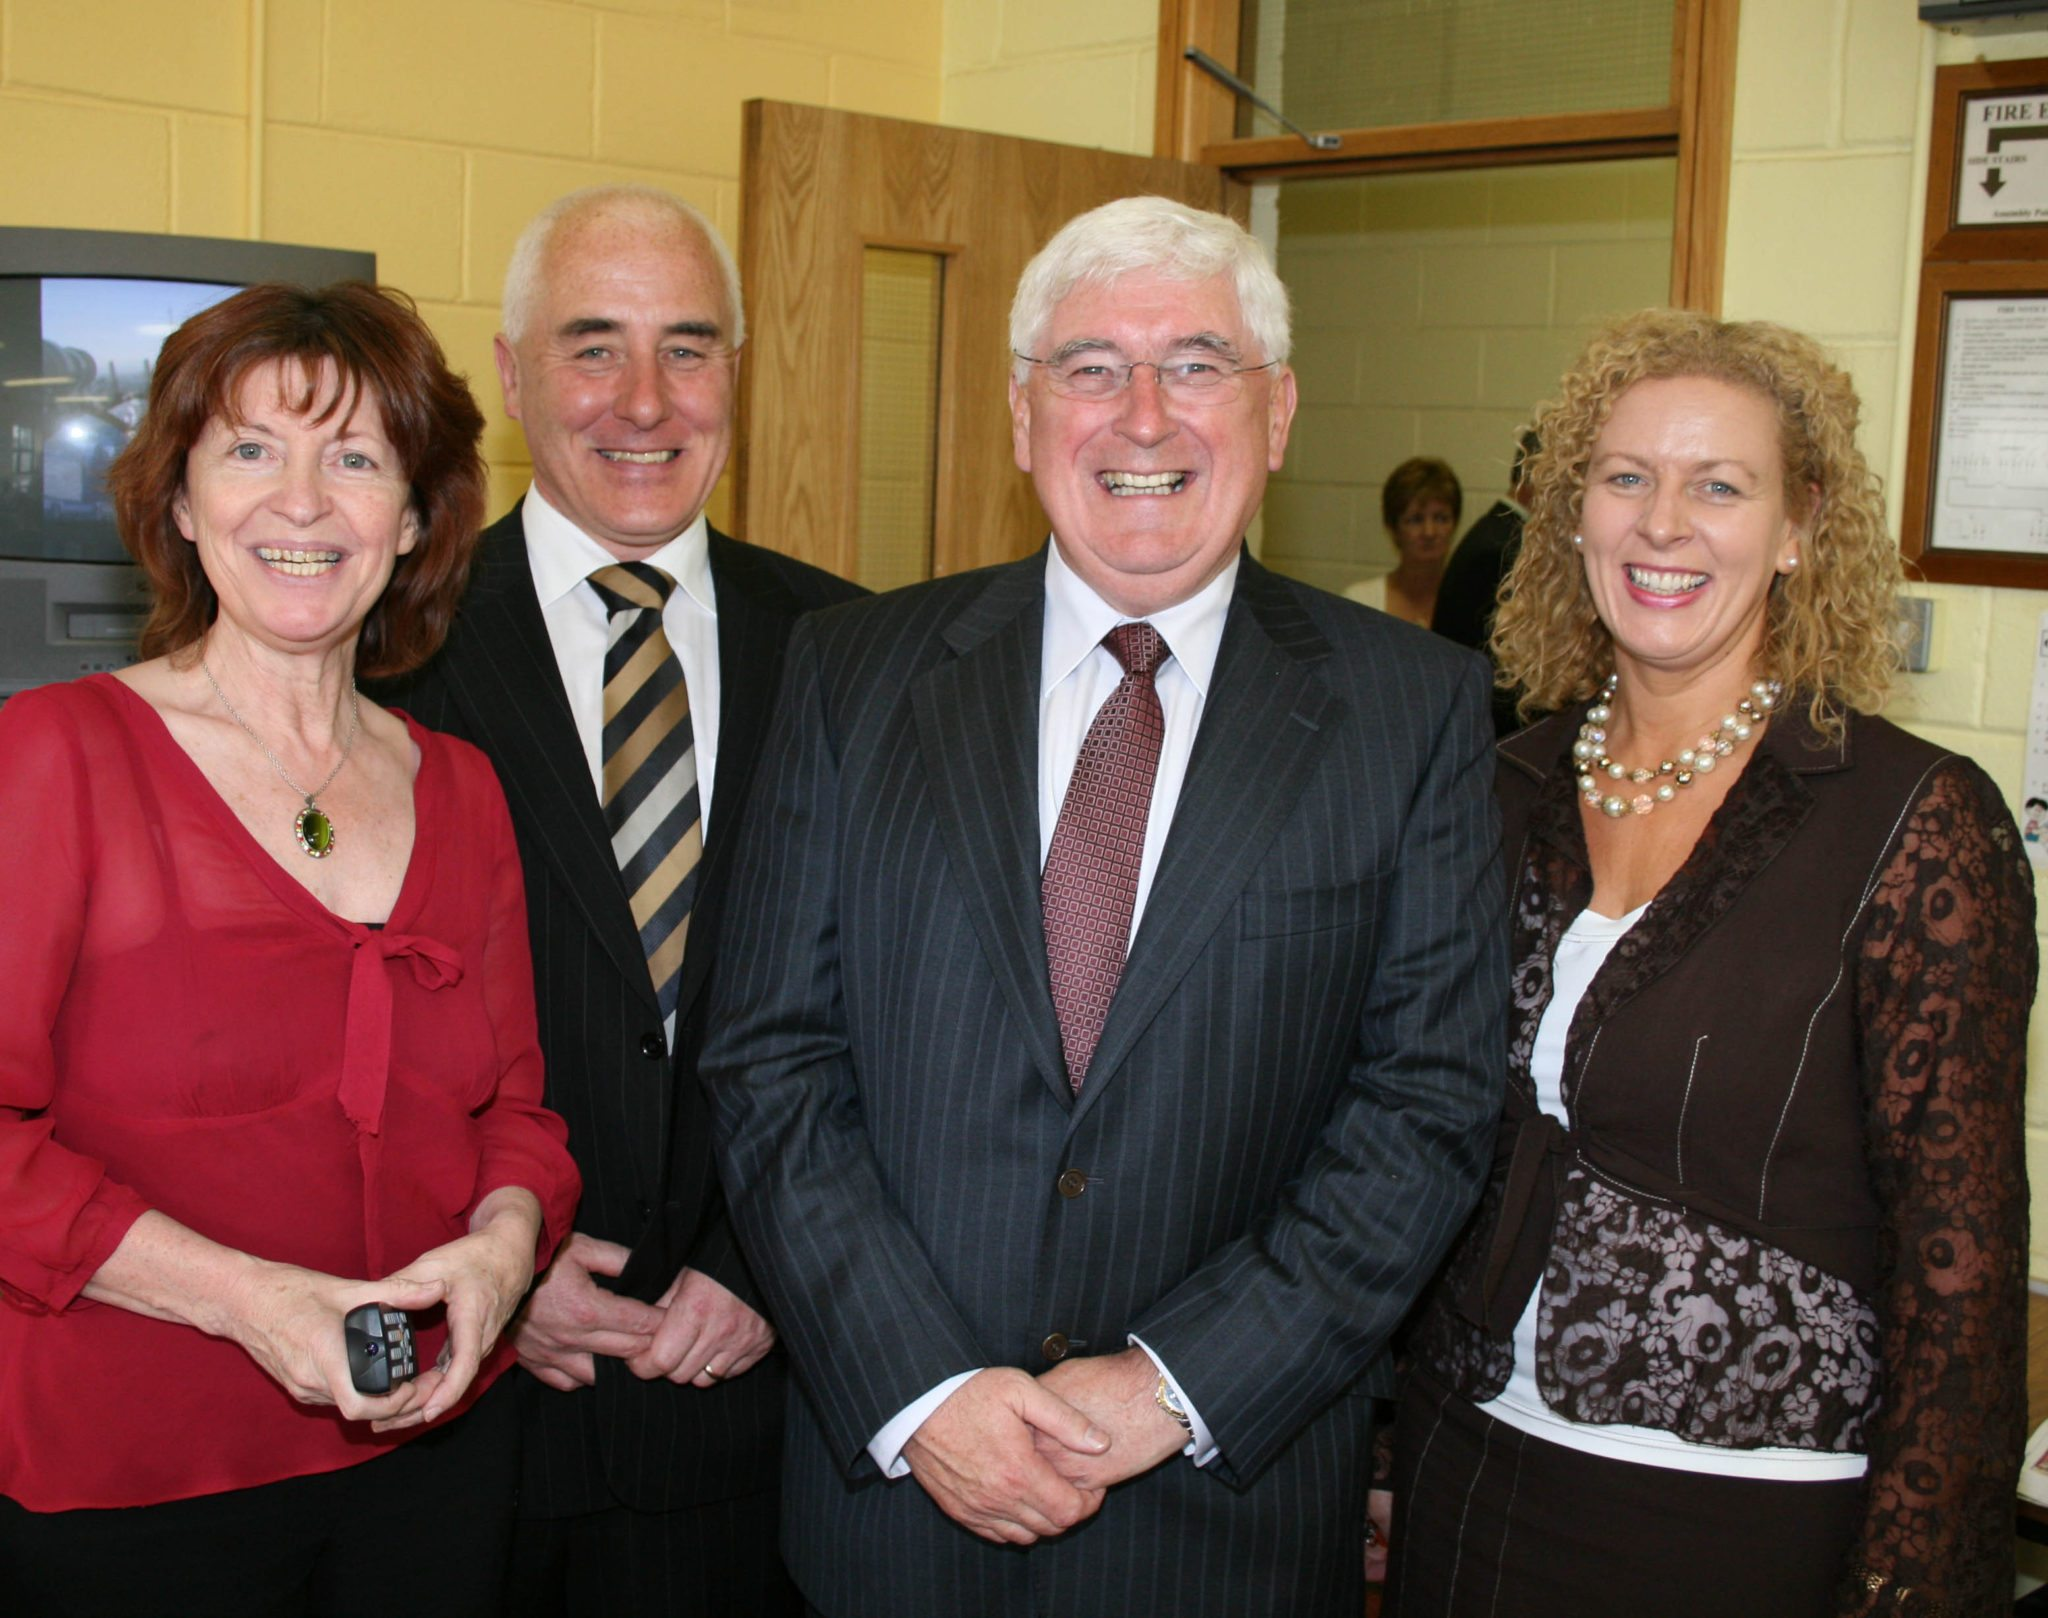 2008 : Visit of Minister of Education Mr Batt OKeeffe to NewcastleWest Post Primary School, Desmond College